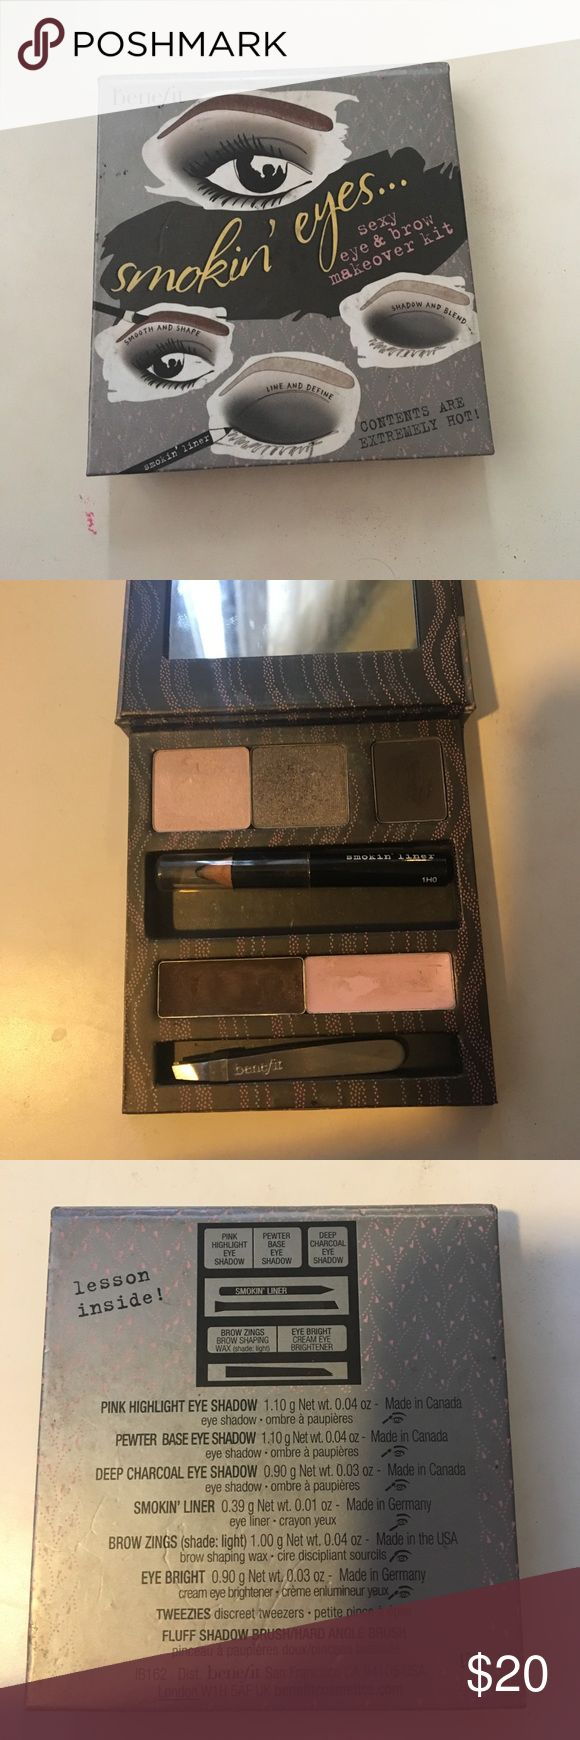 Benefit Smokin Eyes and brows palette eye and brow kit. Only swatched. Brand new pencil and plucker. Benefit Makeup Eyeshadow